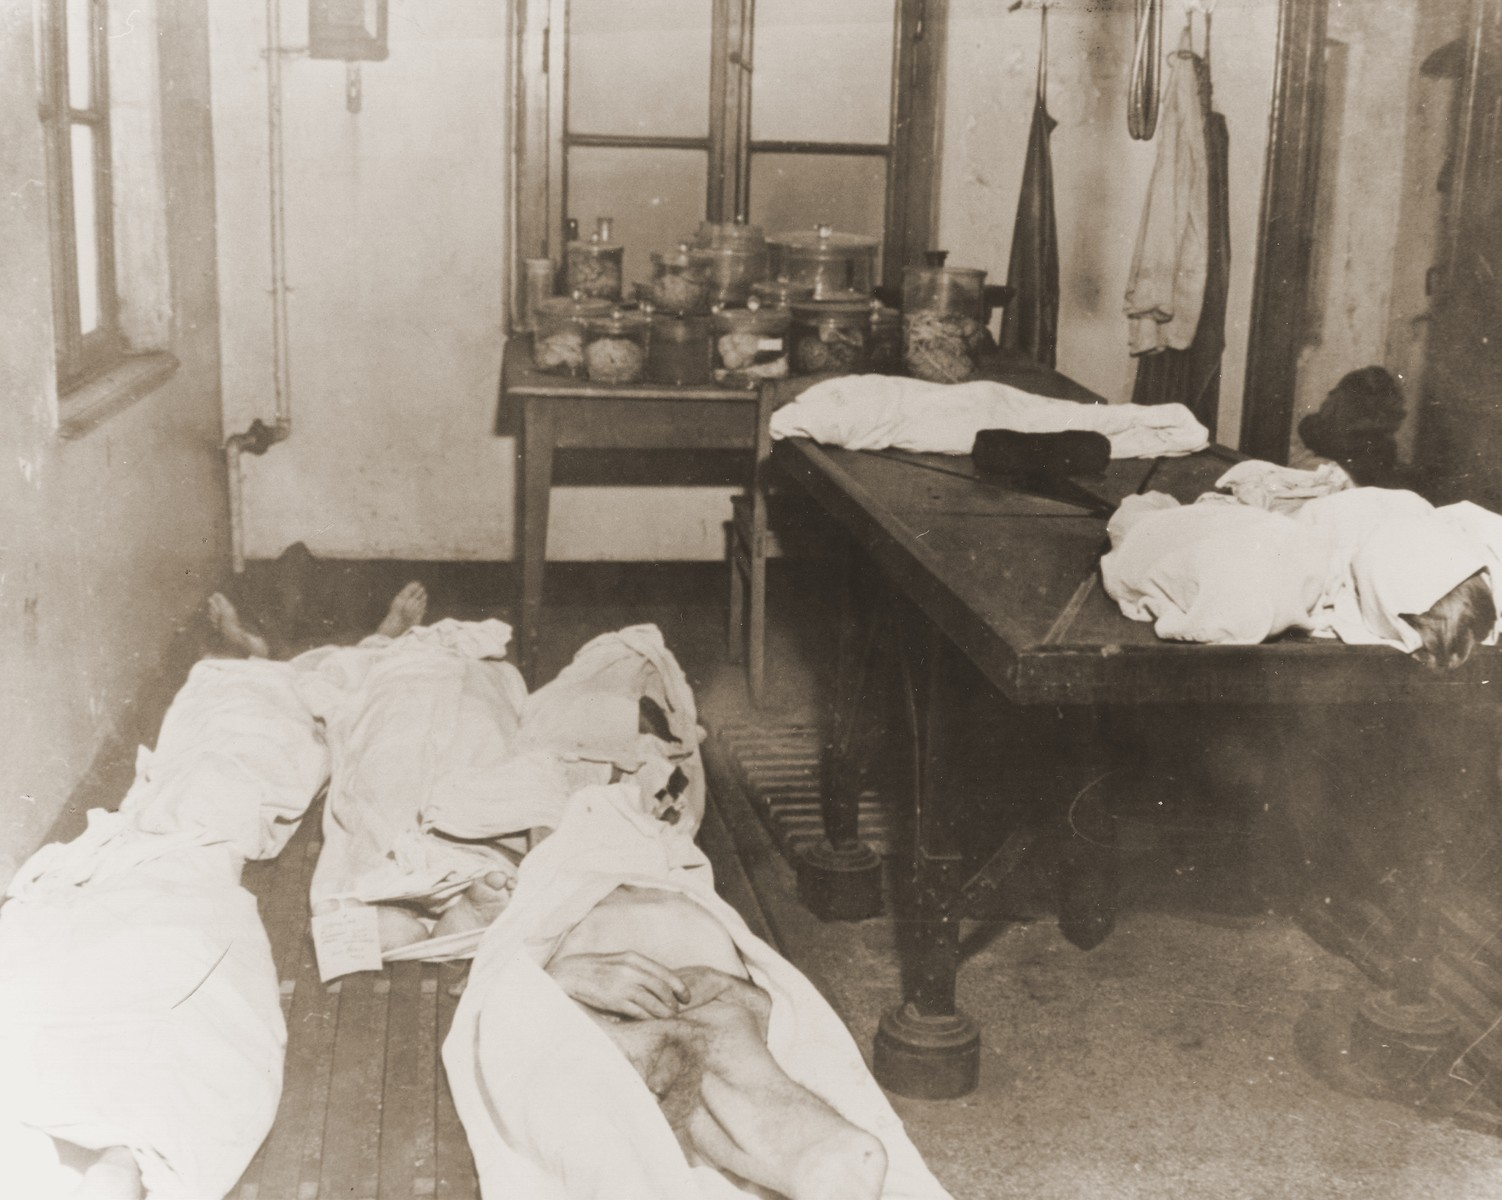 "Sheets cover the bodies of slave laborers found in a room in the Dortmund POW camp.  On the table are the bodies of four young children.  The original Signal Corps caption reads, ""U.S. TROOPS LIBERATE 4,070 MALTREATED PRISONERS IN DORTMUND.   When Ninth U.S. Army troops captured Dortmund, Germany, April 14, 1945, they liberated 4,070 prisoners and slave laborers of 13 nationalities--men, women and children.  The Americans discovered prisoners-of-war and workers too weak from starvation, malnutrition and disease to move.  Dozens were found lying in manure piles, ditches and cellars, dying from neglect and lack of medical treatment.  Fifty bodies were found in the yard of the German guard barracks, now used as a hospital, unburied and decomposing.  These people are now being cared for at the displaced persons center in Dortmund under command of Captain William T. Drake of Wilmington, Ohio.  Two Russian doctors and Russian women assist medical corpsmen of the 79th Division of the Ninth Army in caring for them.  PNA                                                                    EA 64935  THIS PHOTO SHOWS:  Sheets cover the bodies of slave laborors and prisonerS-of-war.  On the table are four younG children  U.S. Signal Corps Photo ETO-HQ-45-34459. SERVICED BY LONDON OWI TO LIST B-1 CERTIFIED AS PASSED BY SHAEF CENSOR"